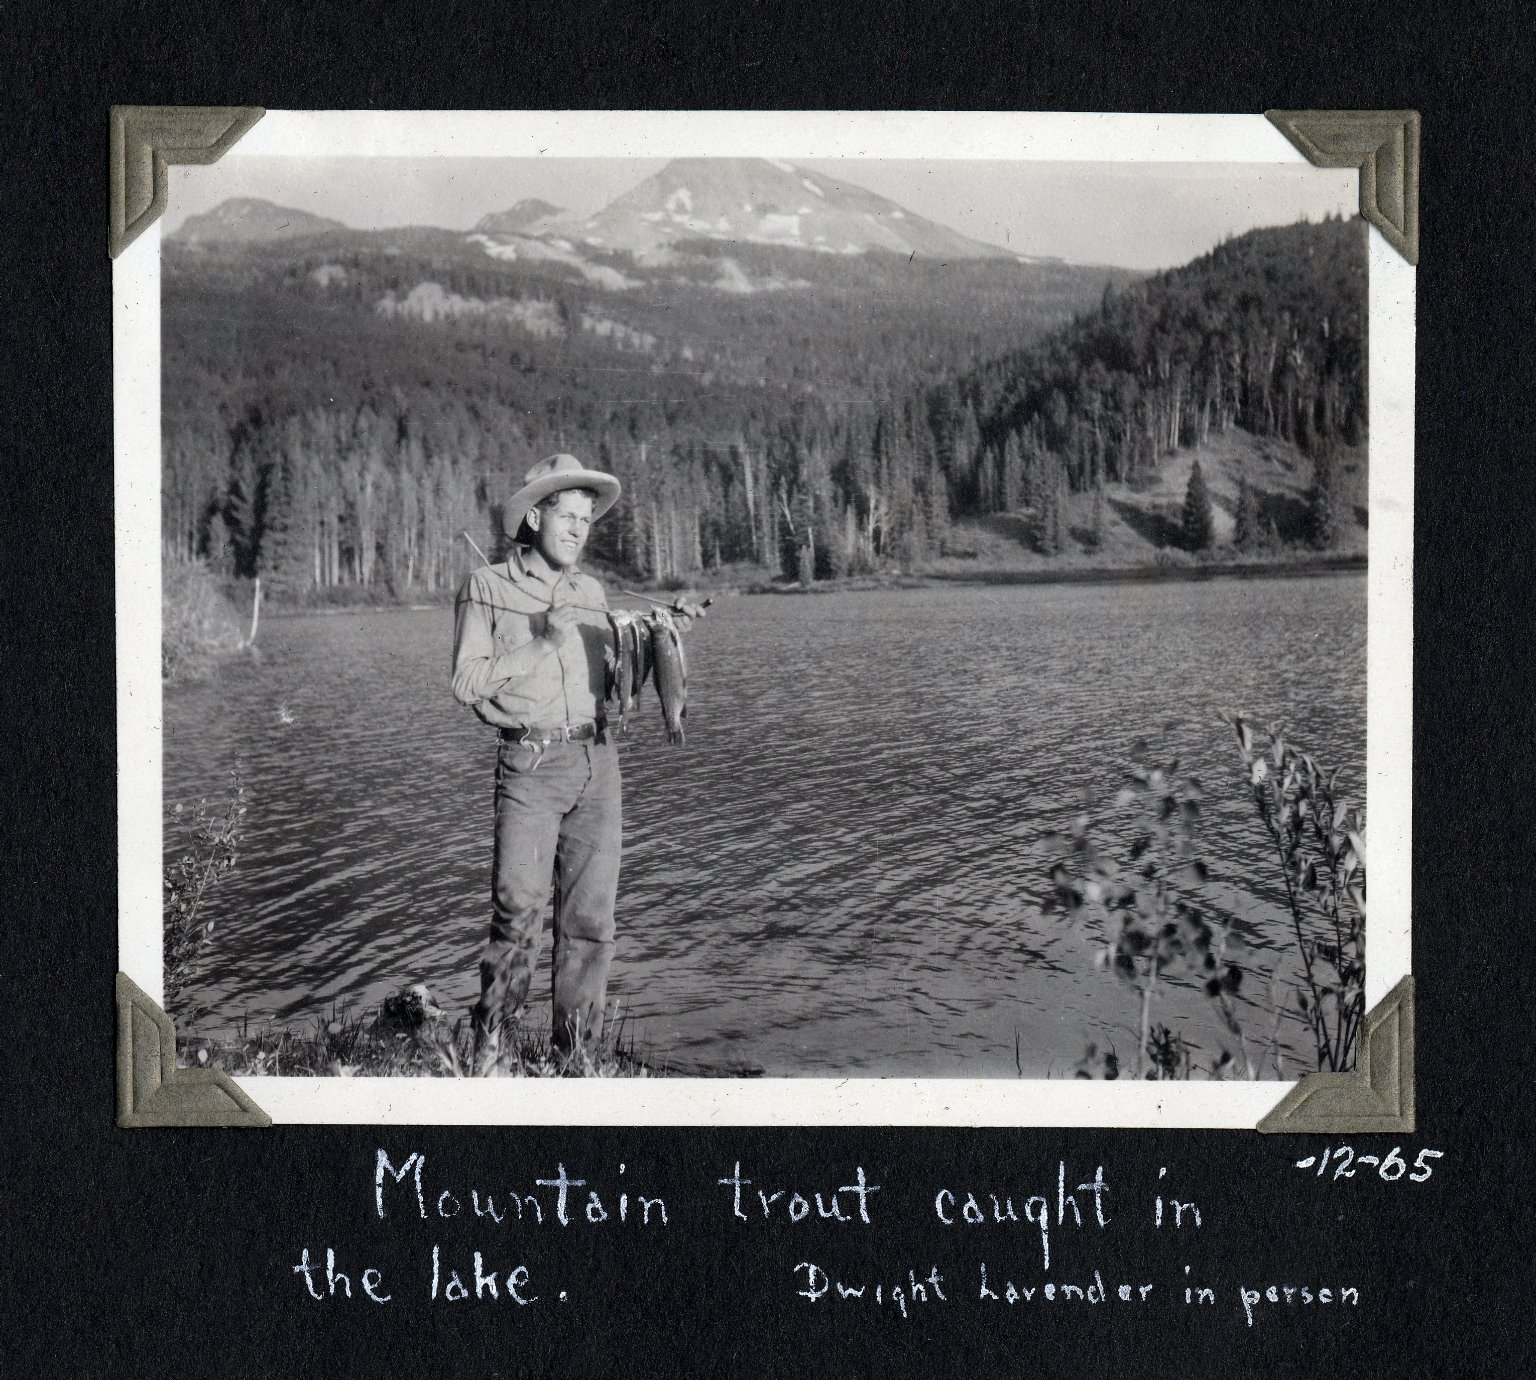 Dwight at Woods Lake, holding trout